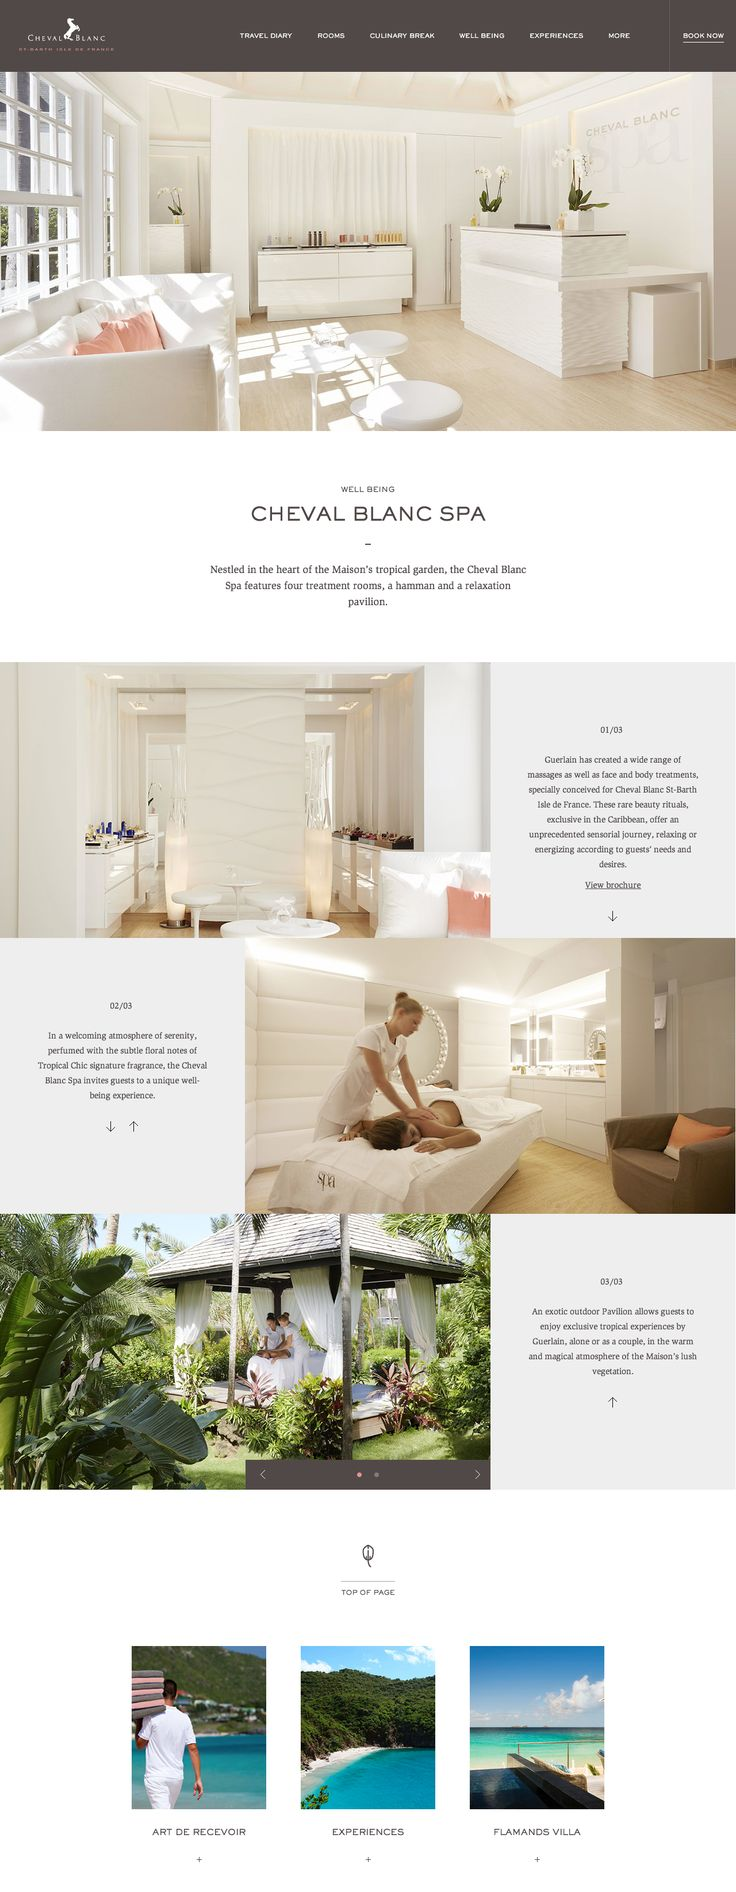 Agency Dominion's design team reviews and debates a collection of the best hotel and resort website designs we've stumbled across for 2015.